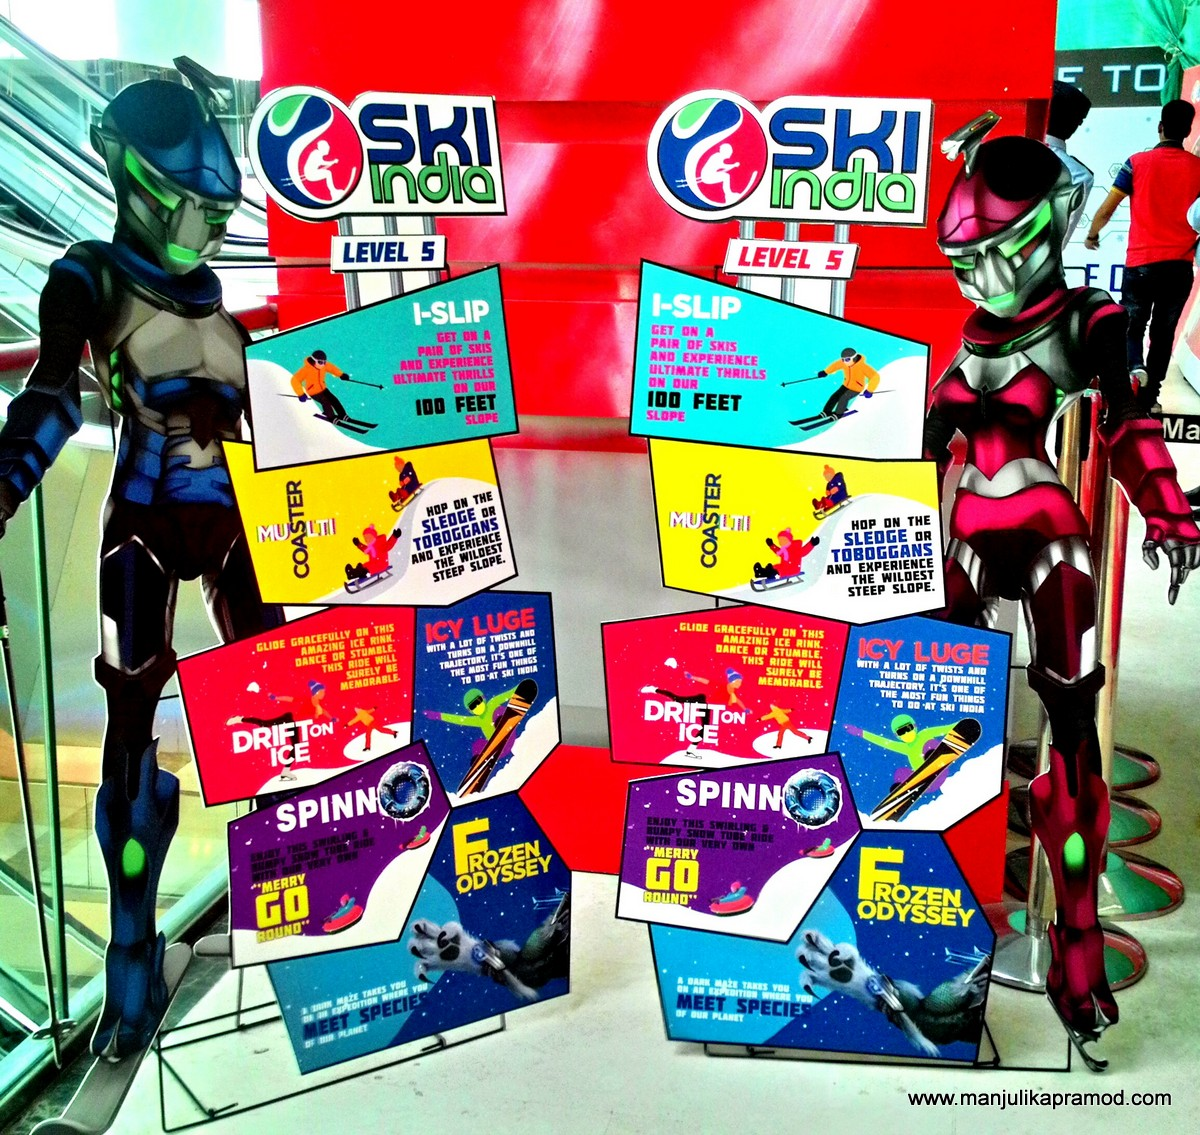 Ski India, Mall of India, Snow capital, Noida, NCR